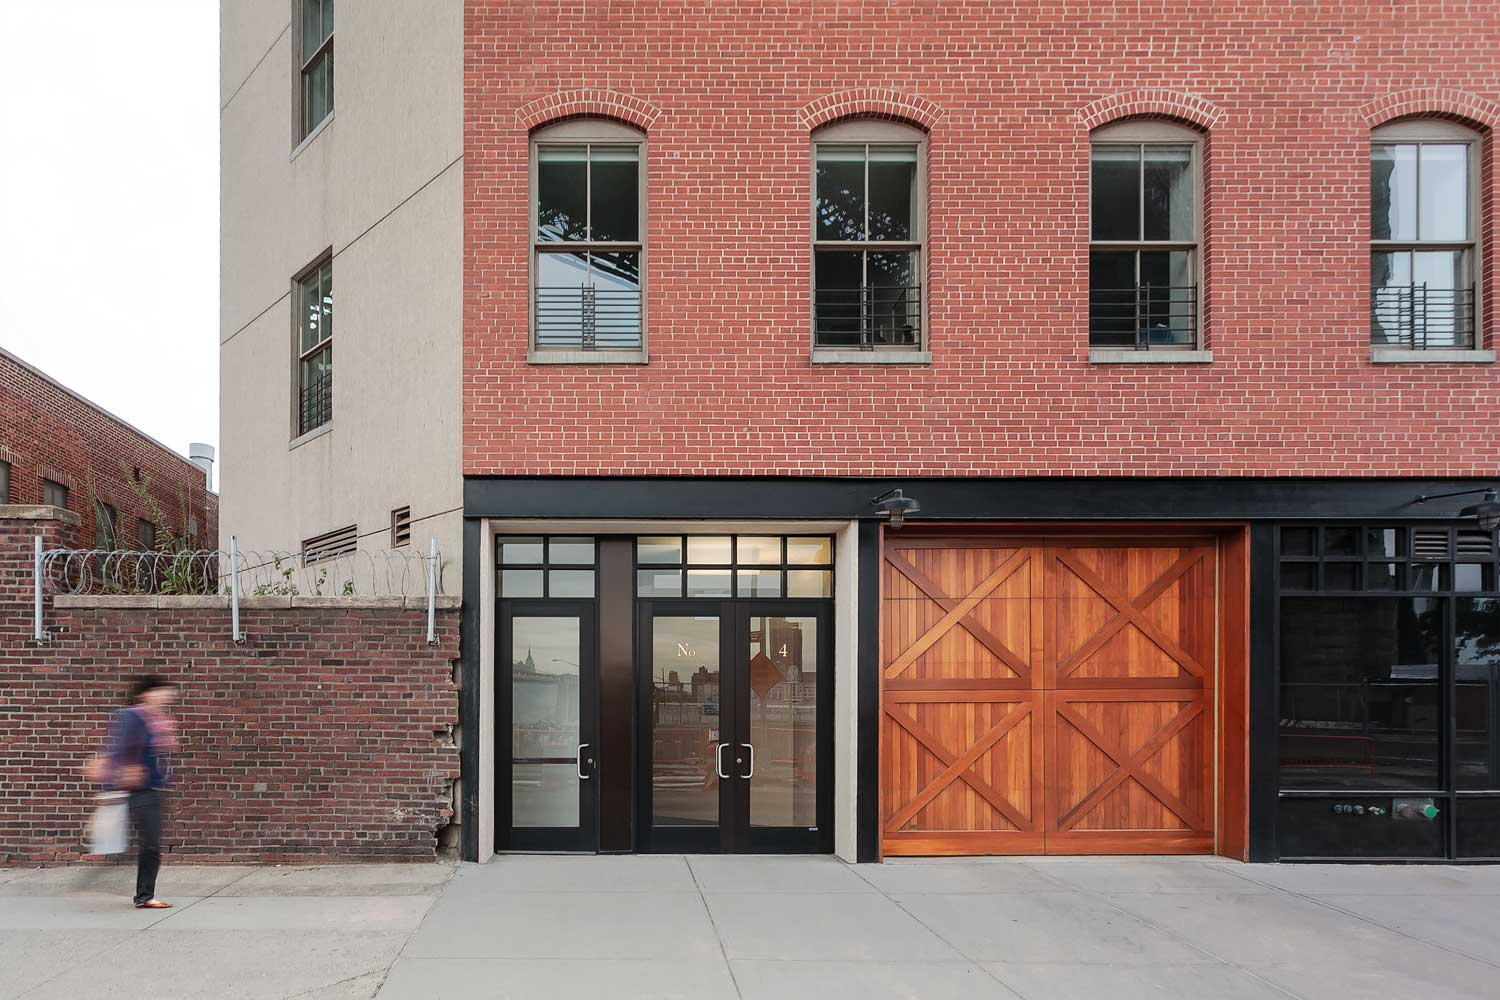 Condominium and garage entry to this historic rebuild and expansion by OCV Architects.